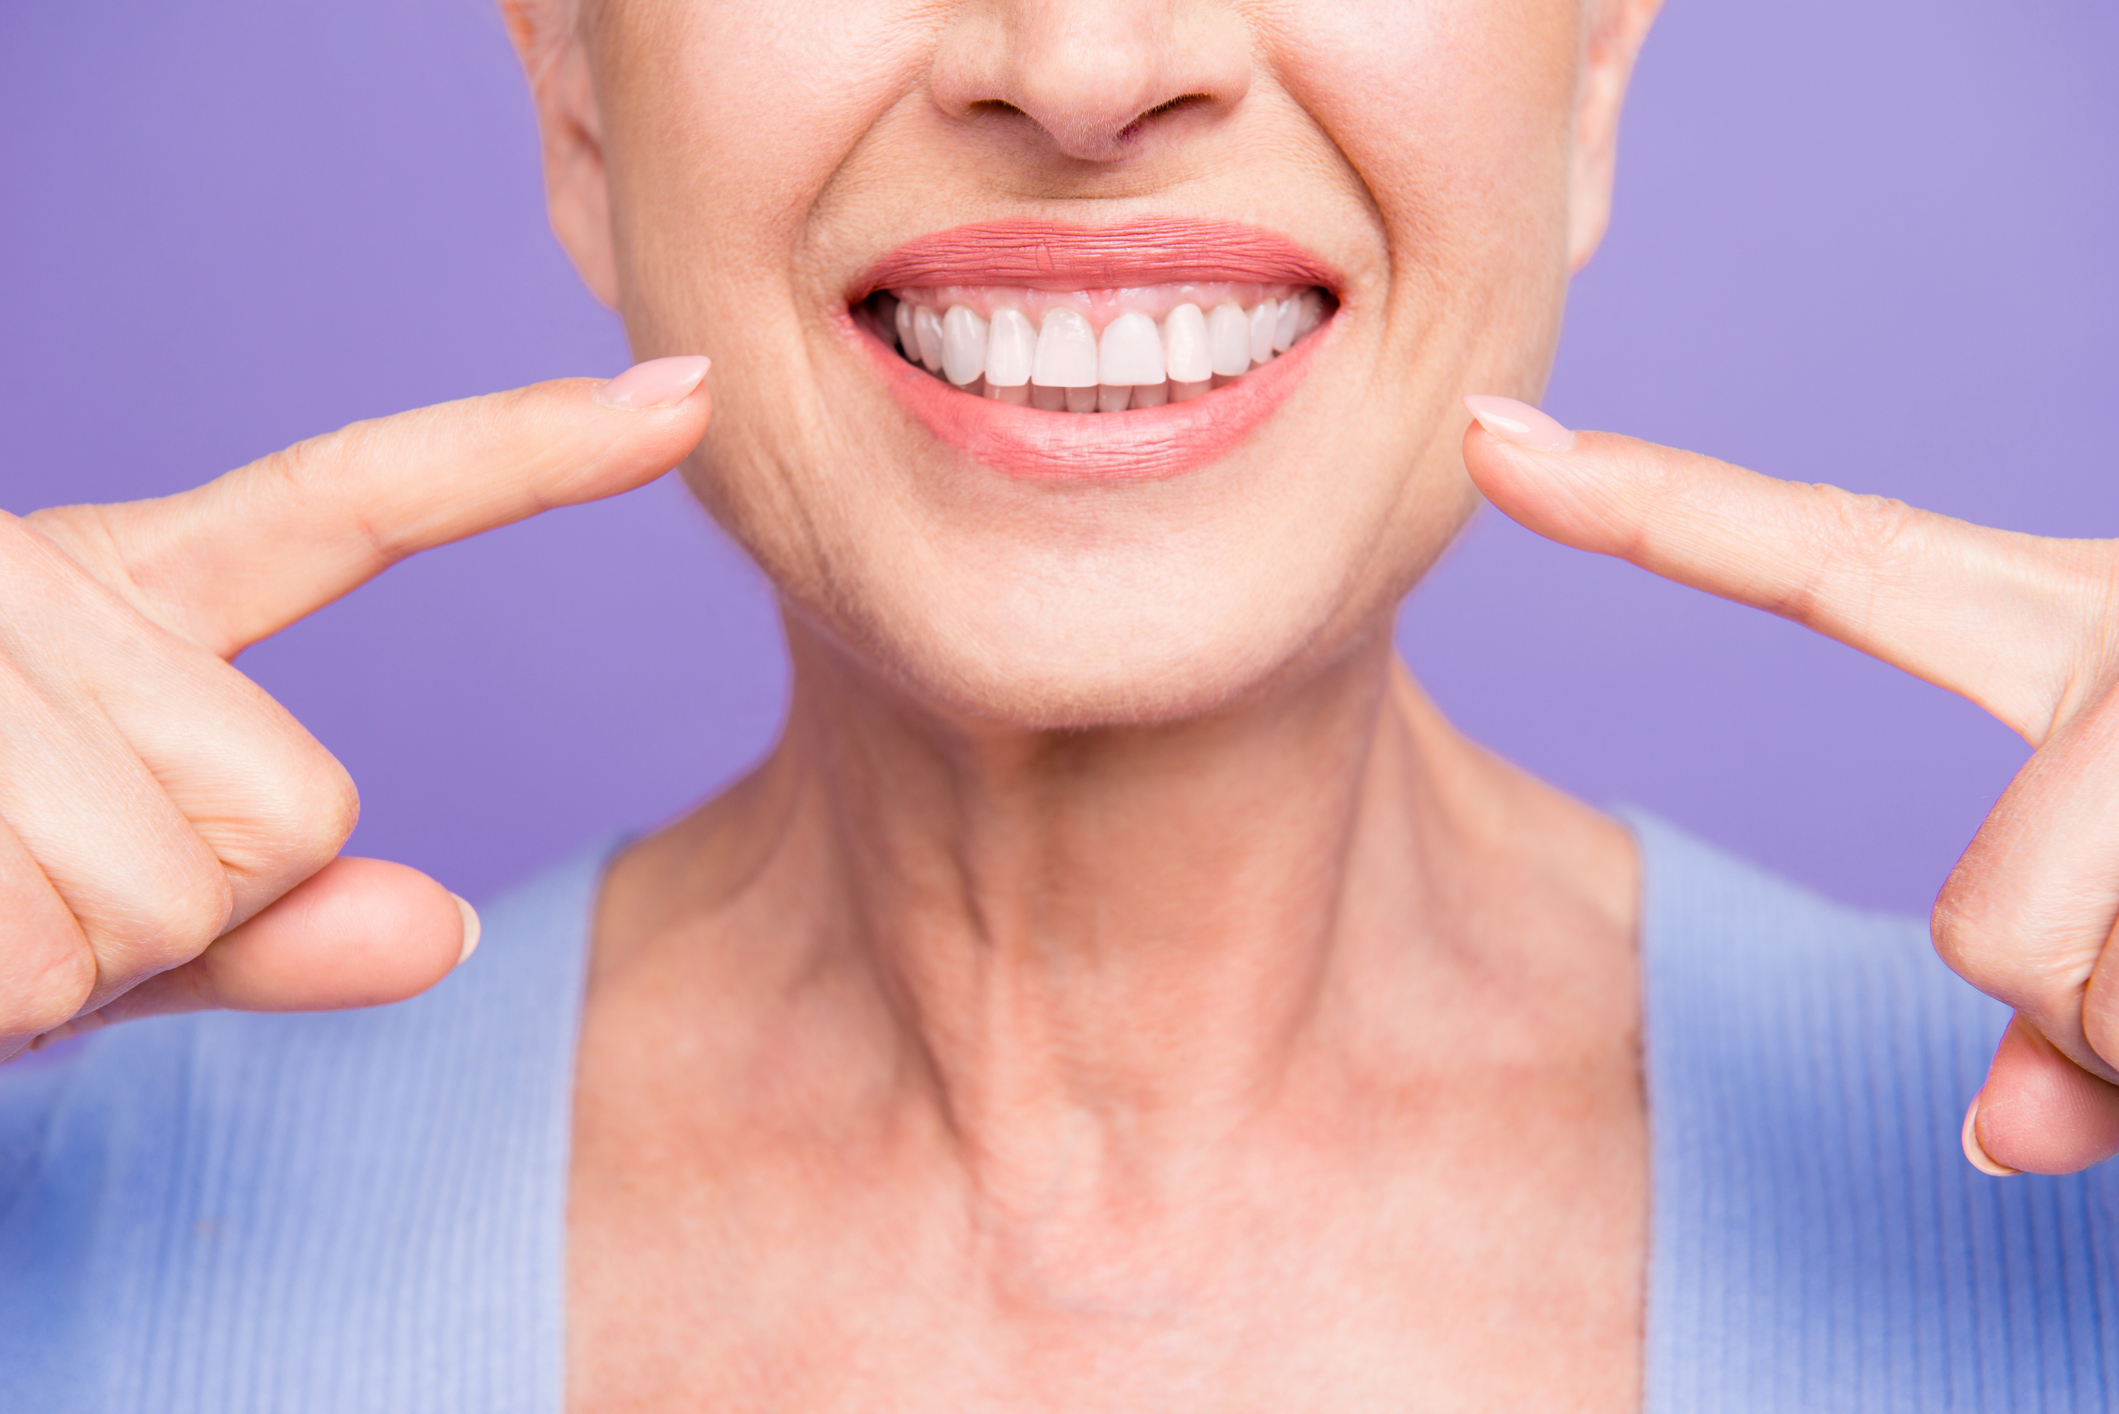 How to have perfect white teeth